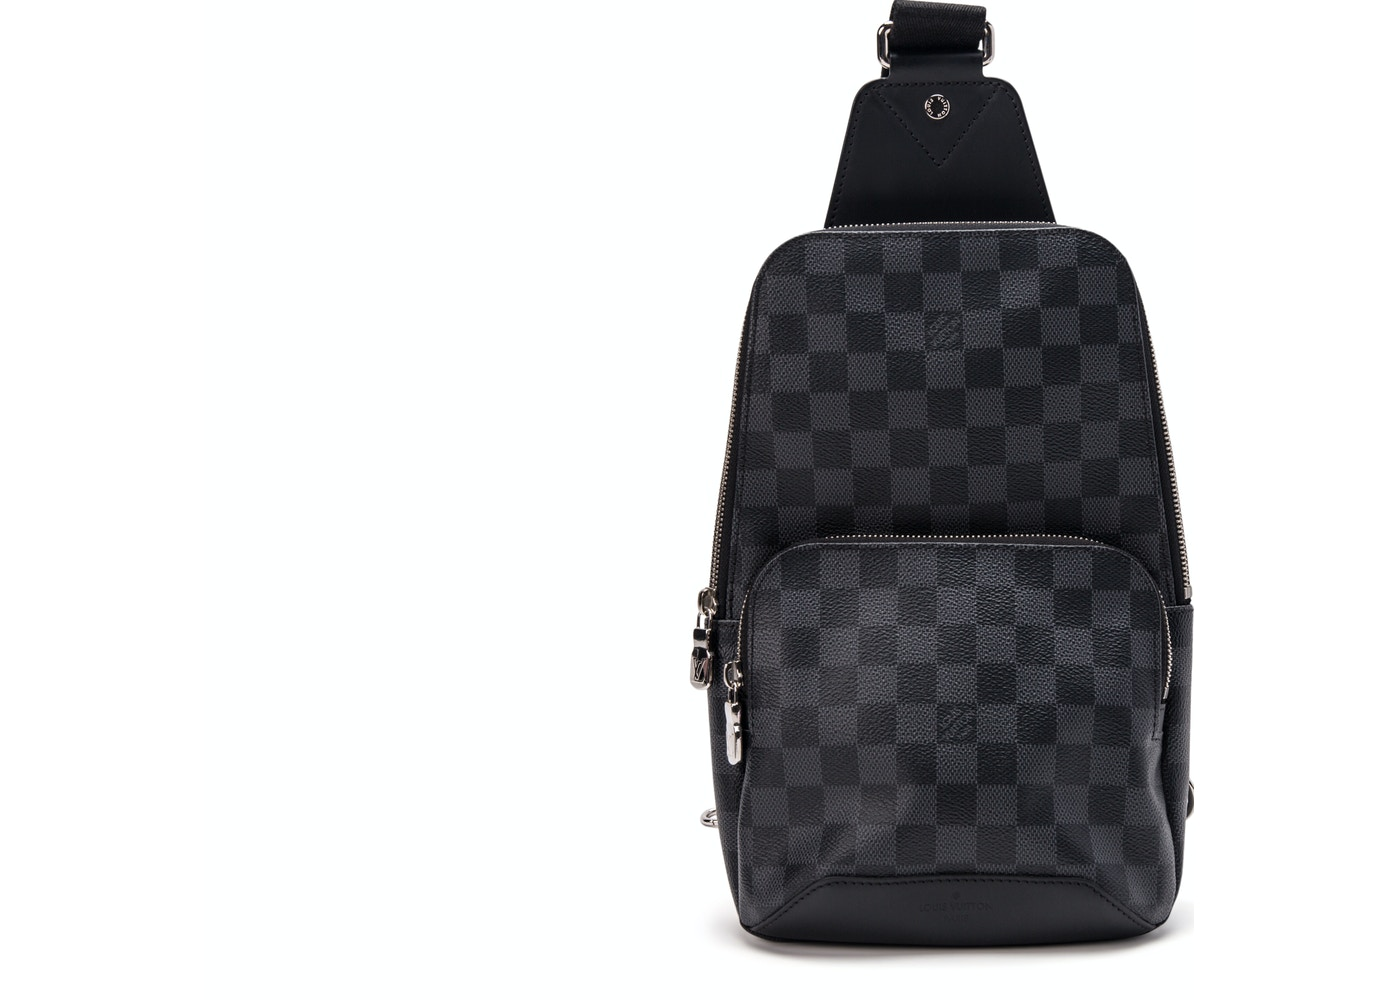 68f8ad3205e0 Louis Vuitton Backpack Avenue Sling Damier Graphite Black Gray. Damier  Graphite Black Gray